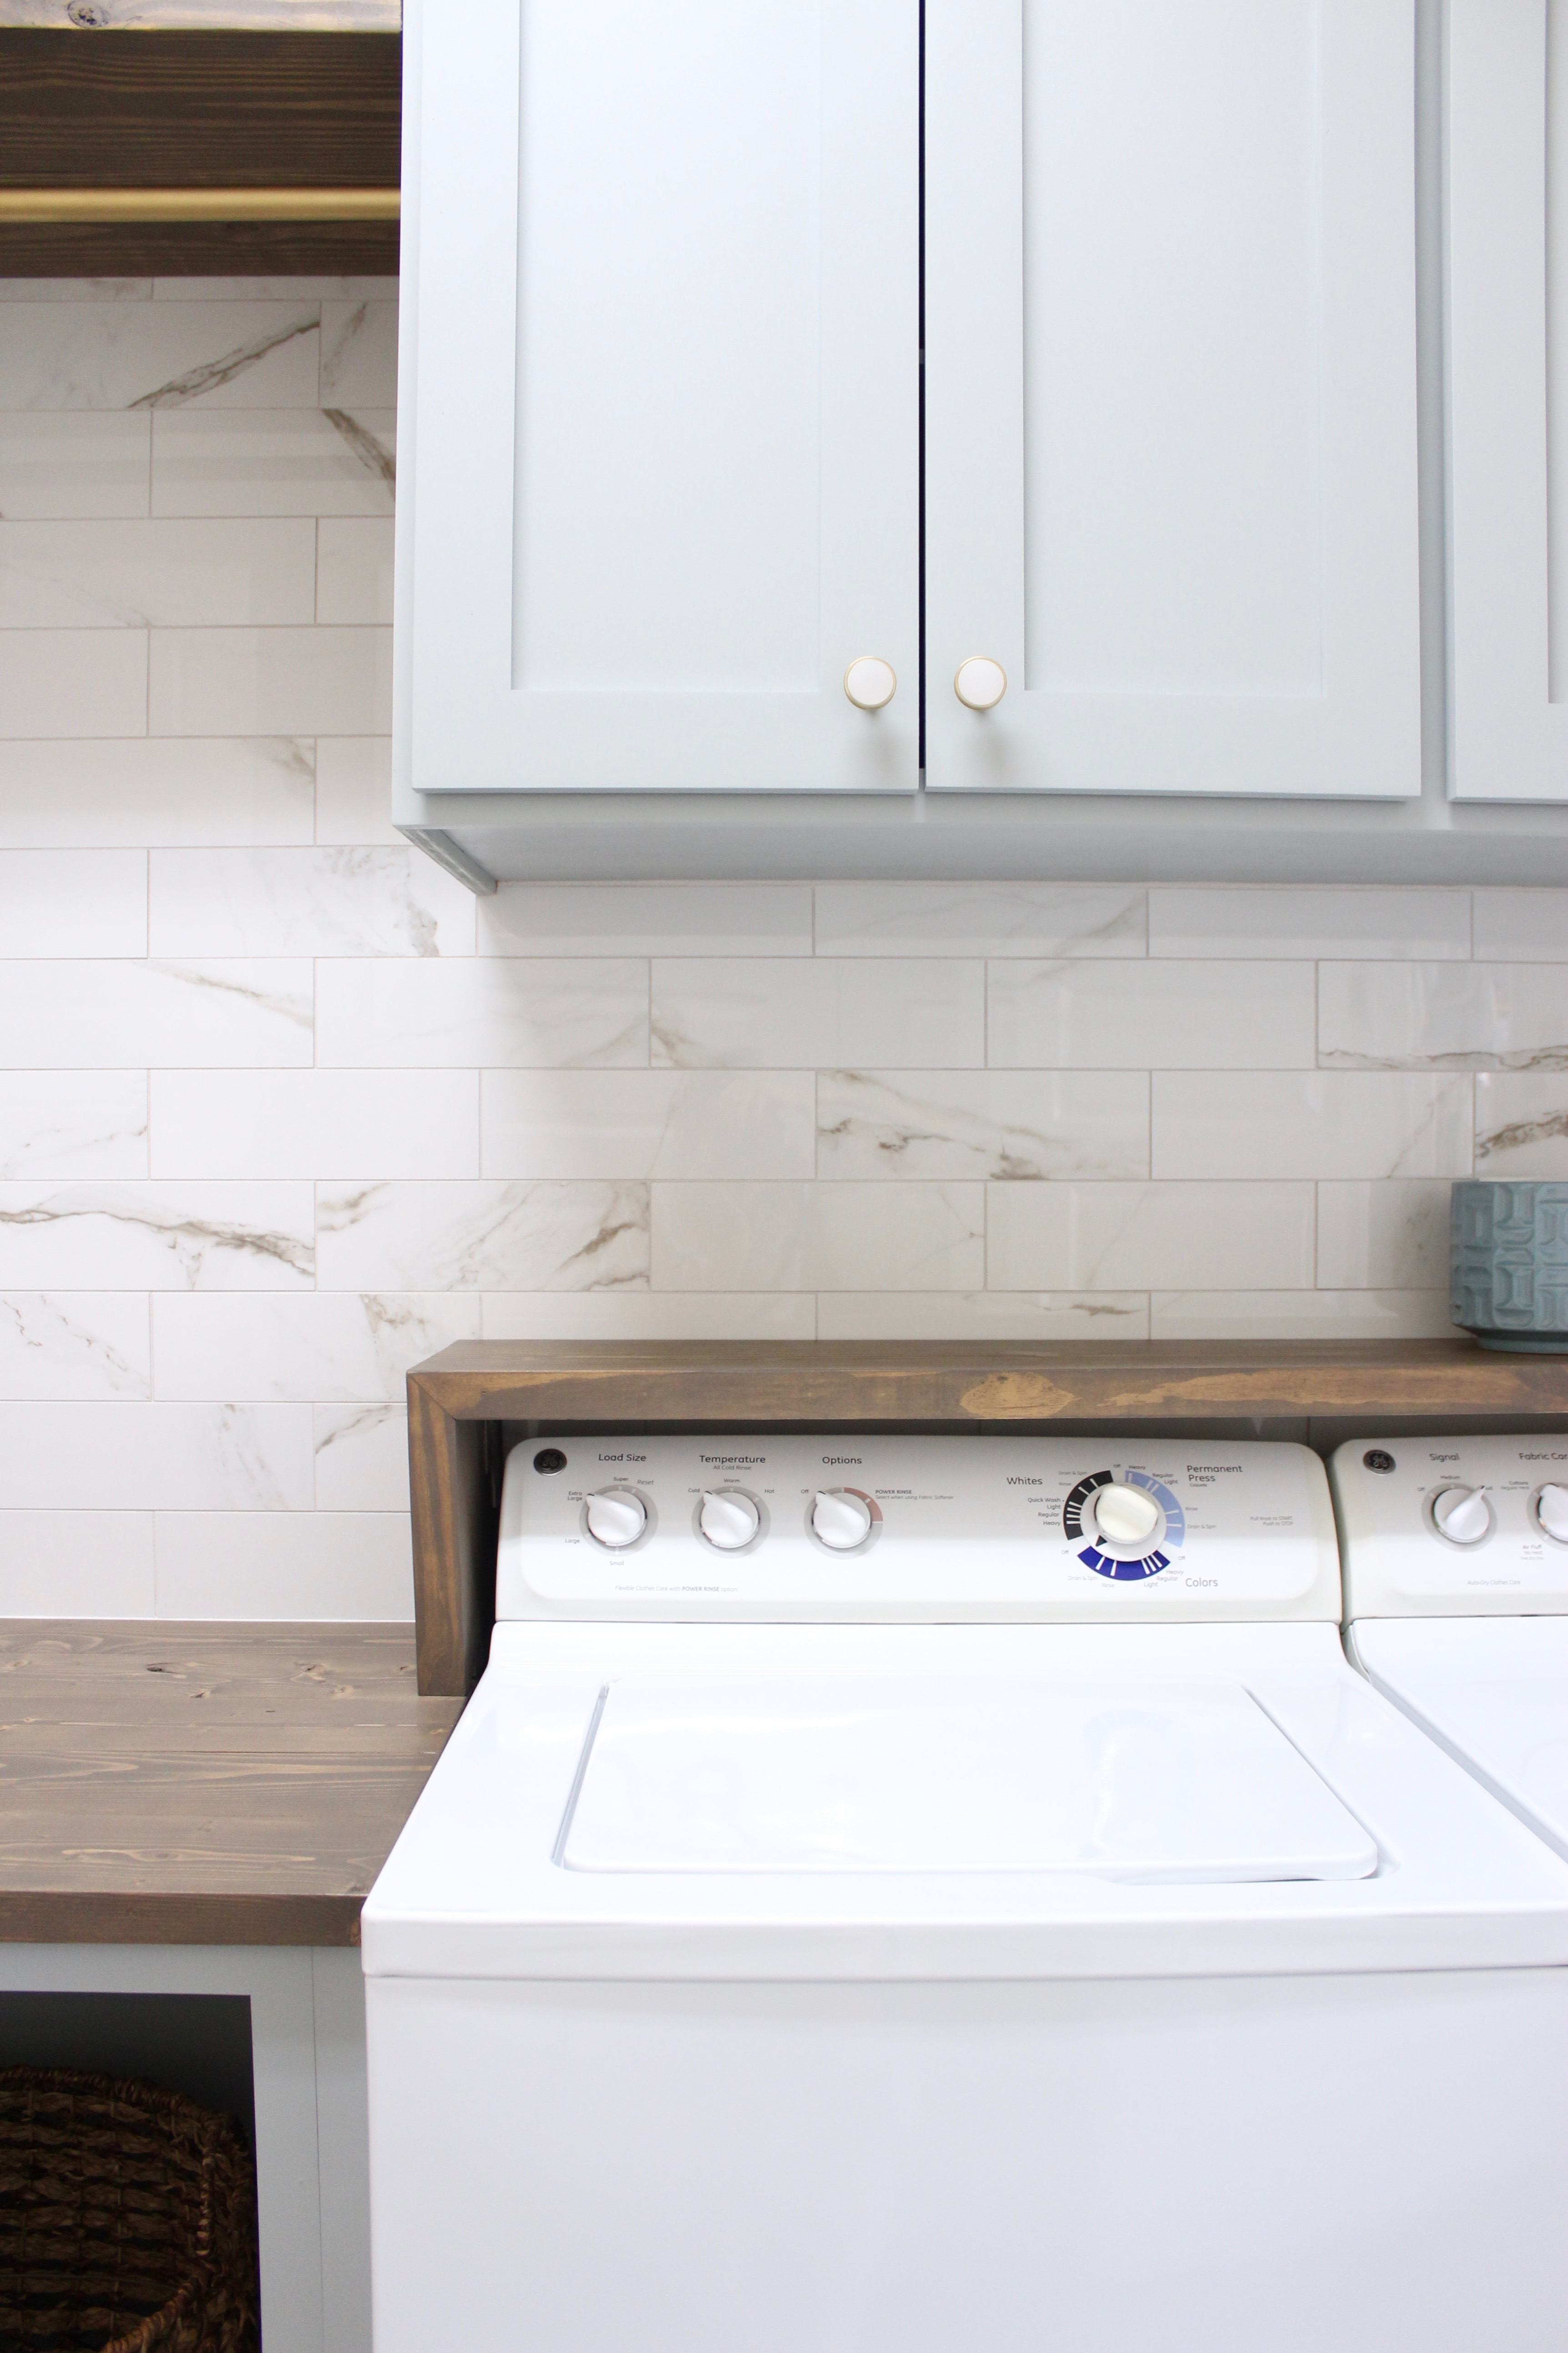 Laundry Room Diy Waterfall Shelf Above Washer Dryer Frills And Drills